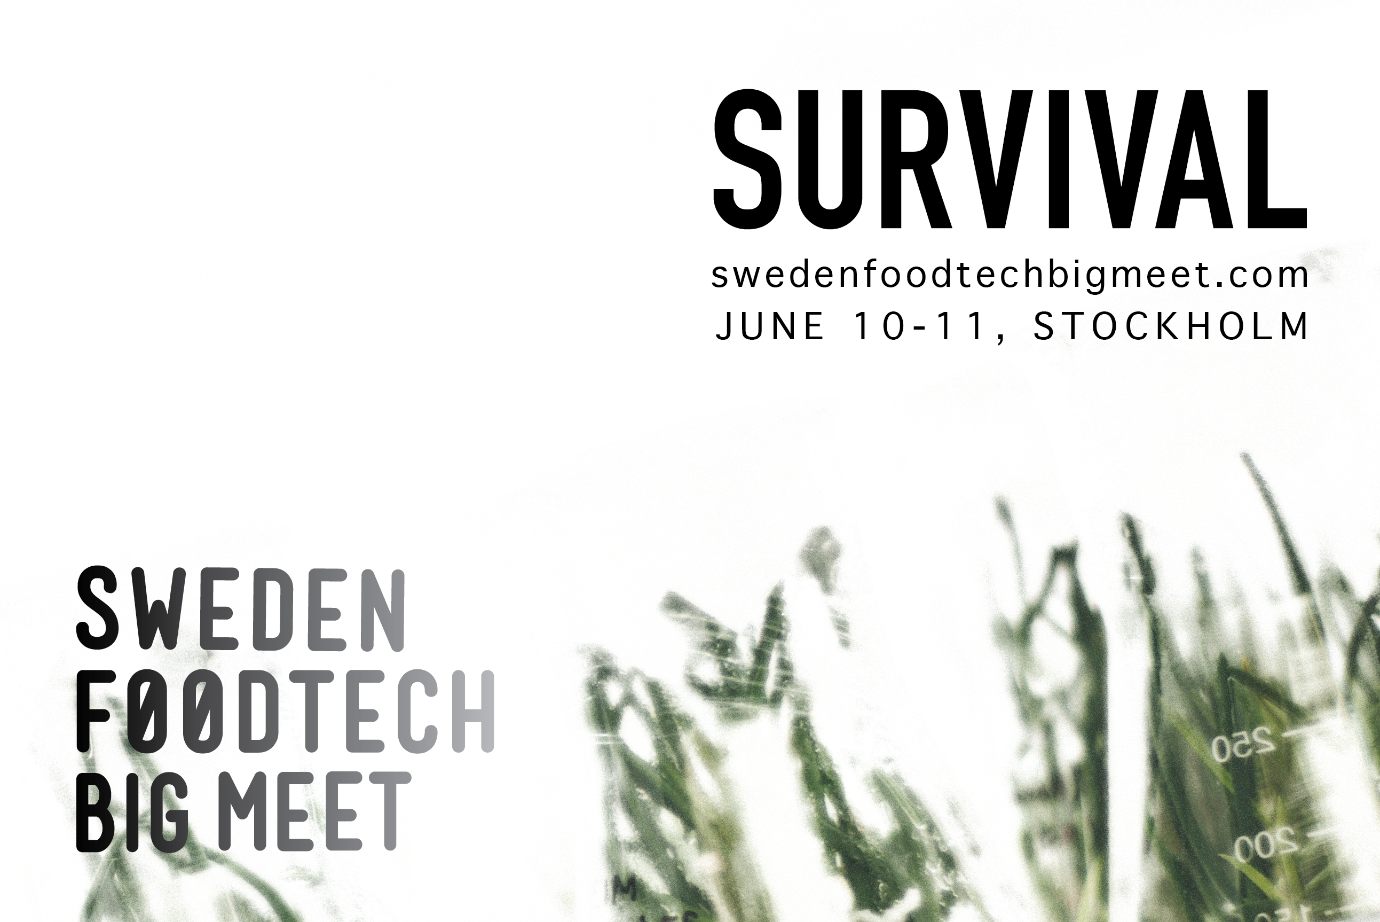 Image: Background is mostly decorative blurry image of plants and laboratory measurement tool. On the left half of the image, SWEDEN FOODTECH BIG MEET. On the right half of the image, SURVIVAL, swedenfoodtechbigmeet.com, JUNE 10 - 11, STOCKHOLM.